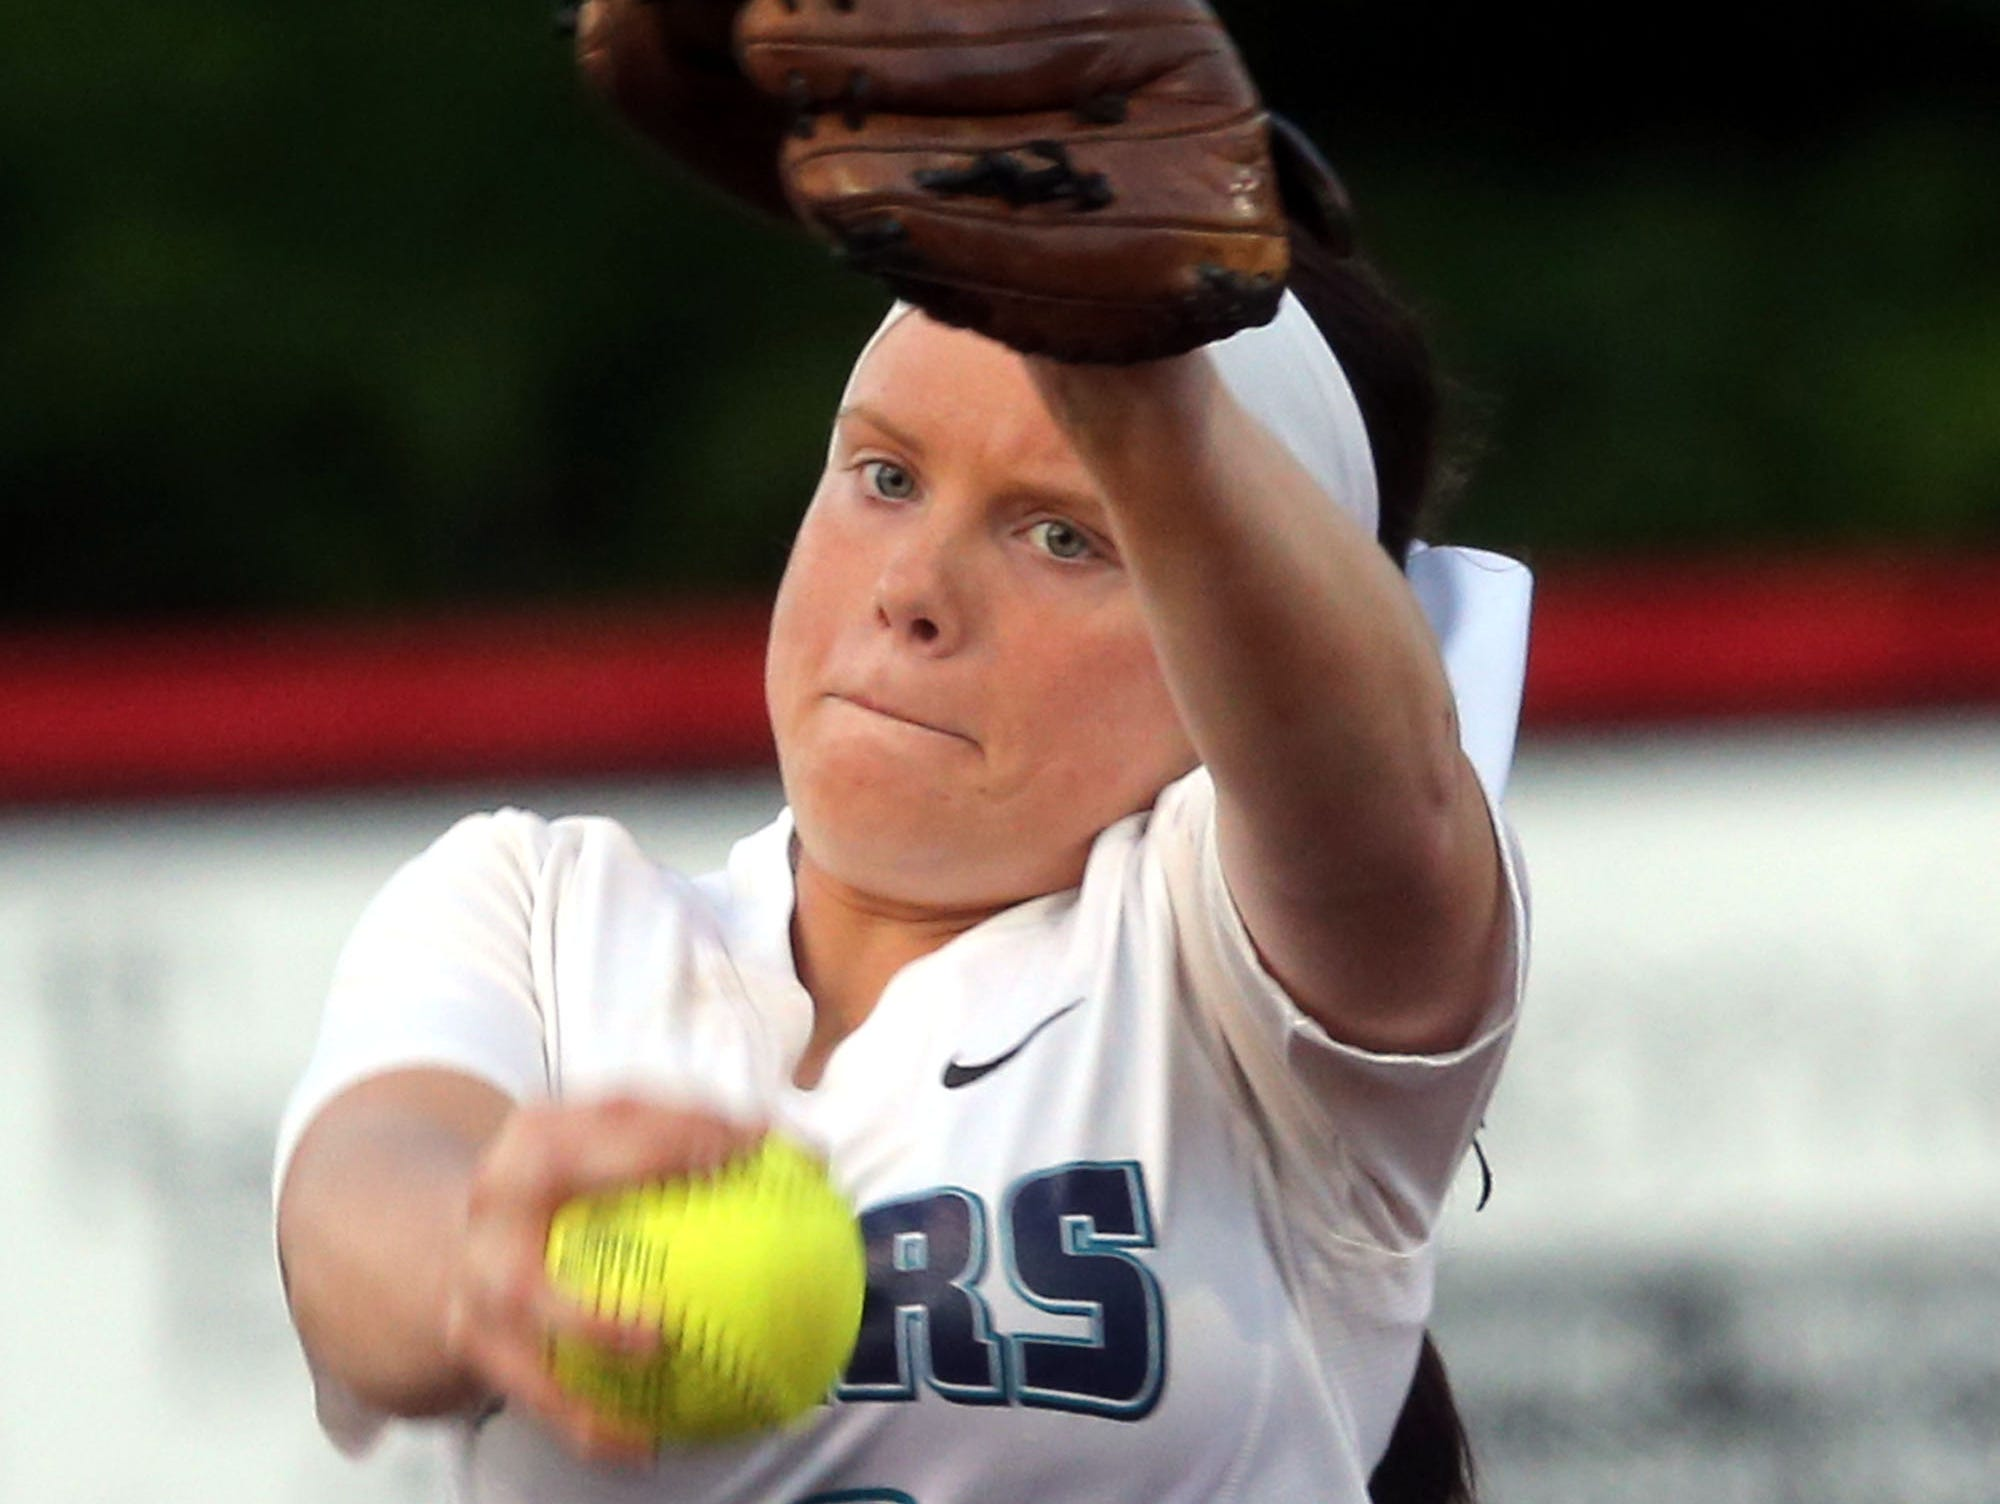 Siegel's Veronica Westfall pitches against Coffee County on Wednesday. Westfall will be in the pitcher's circle when the Lady Stars face Hardin Valley at 4 p.m. Tuesday, May 19.